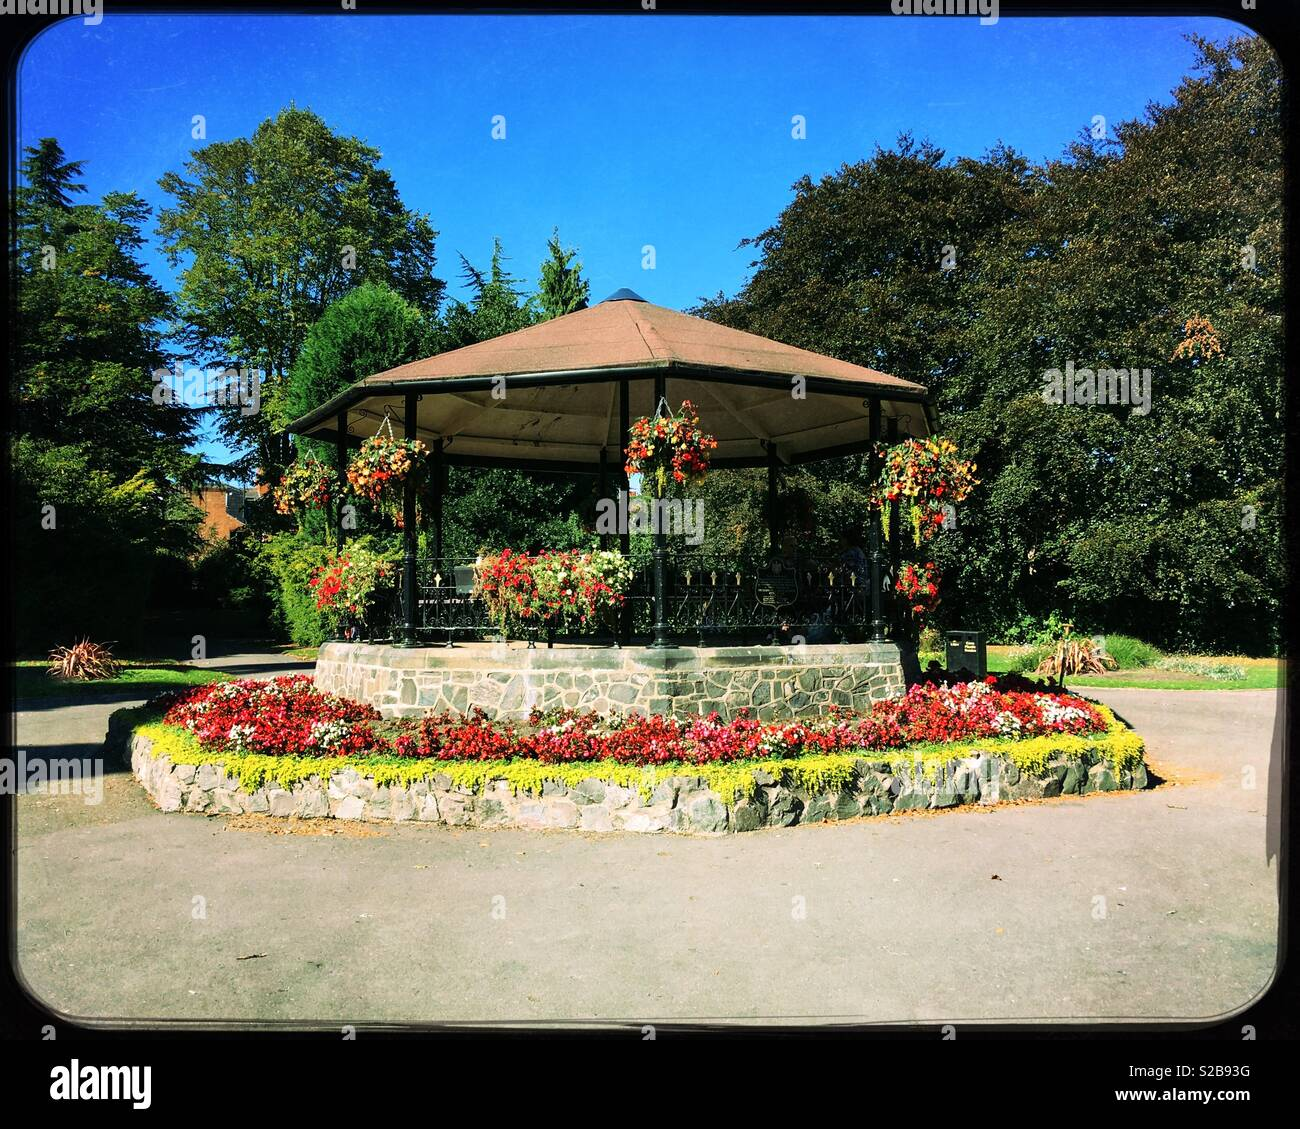 Bandstand, Queen's Park, Loughborough, Leicestershire, UK. - Stock Image